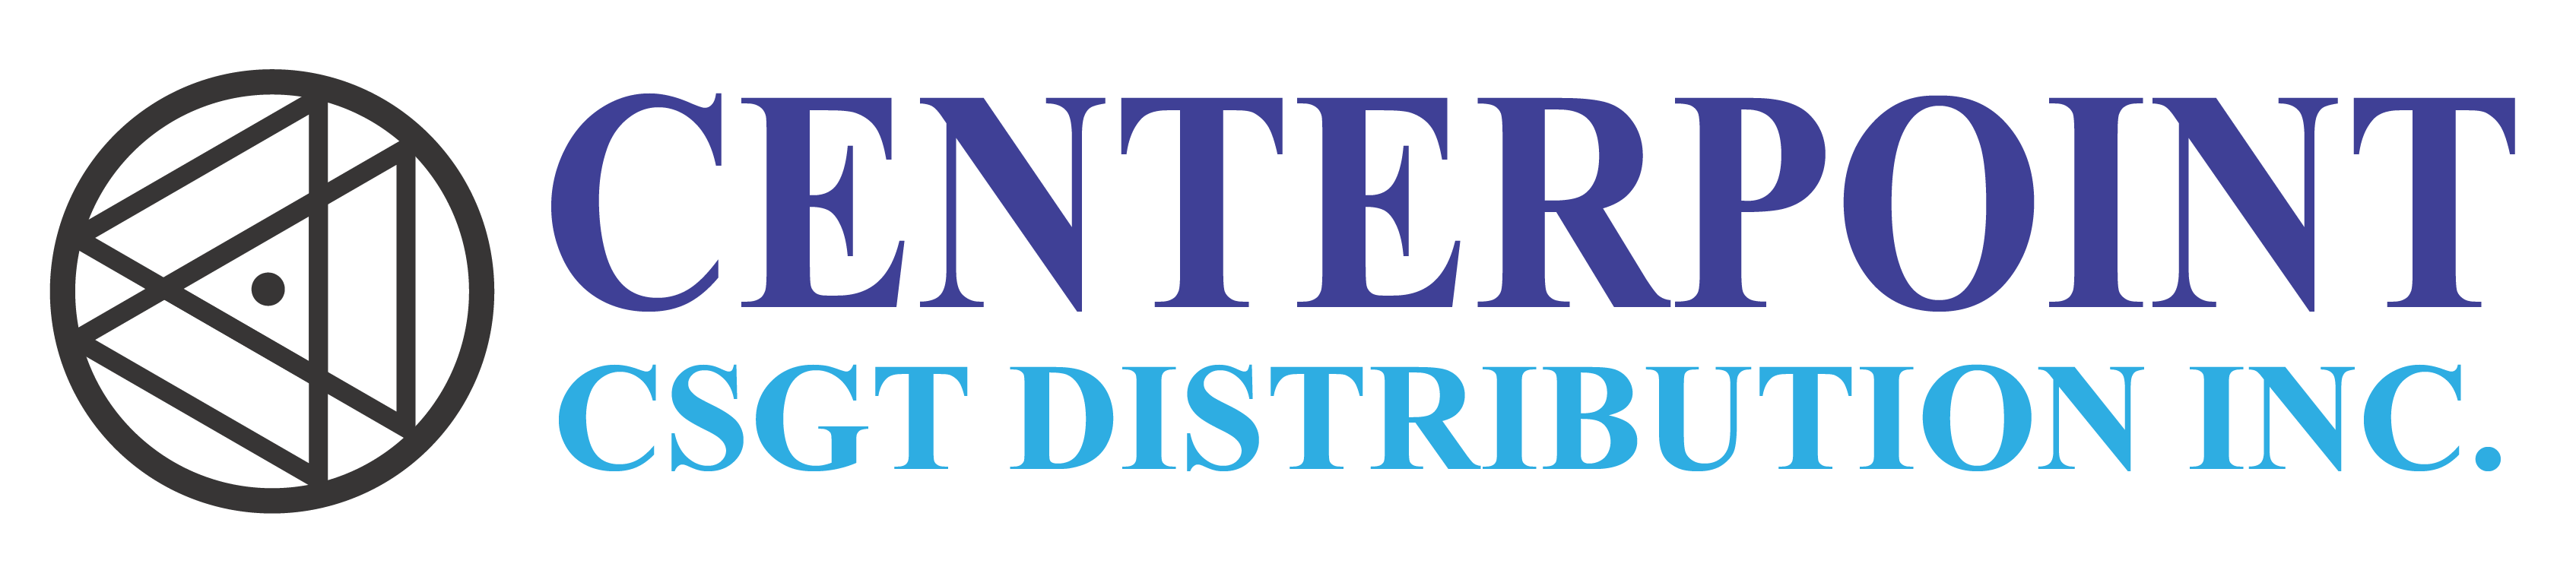 Centerpoint CSGT Distribution Inc